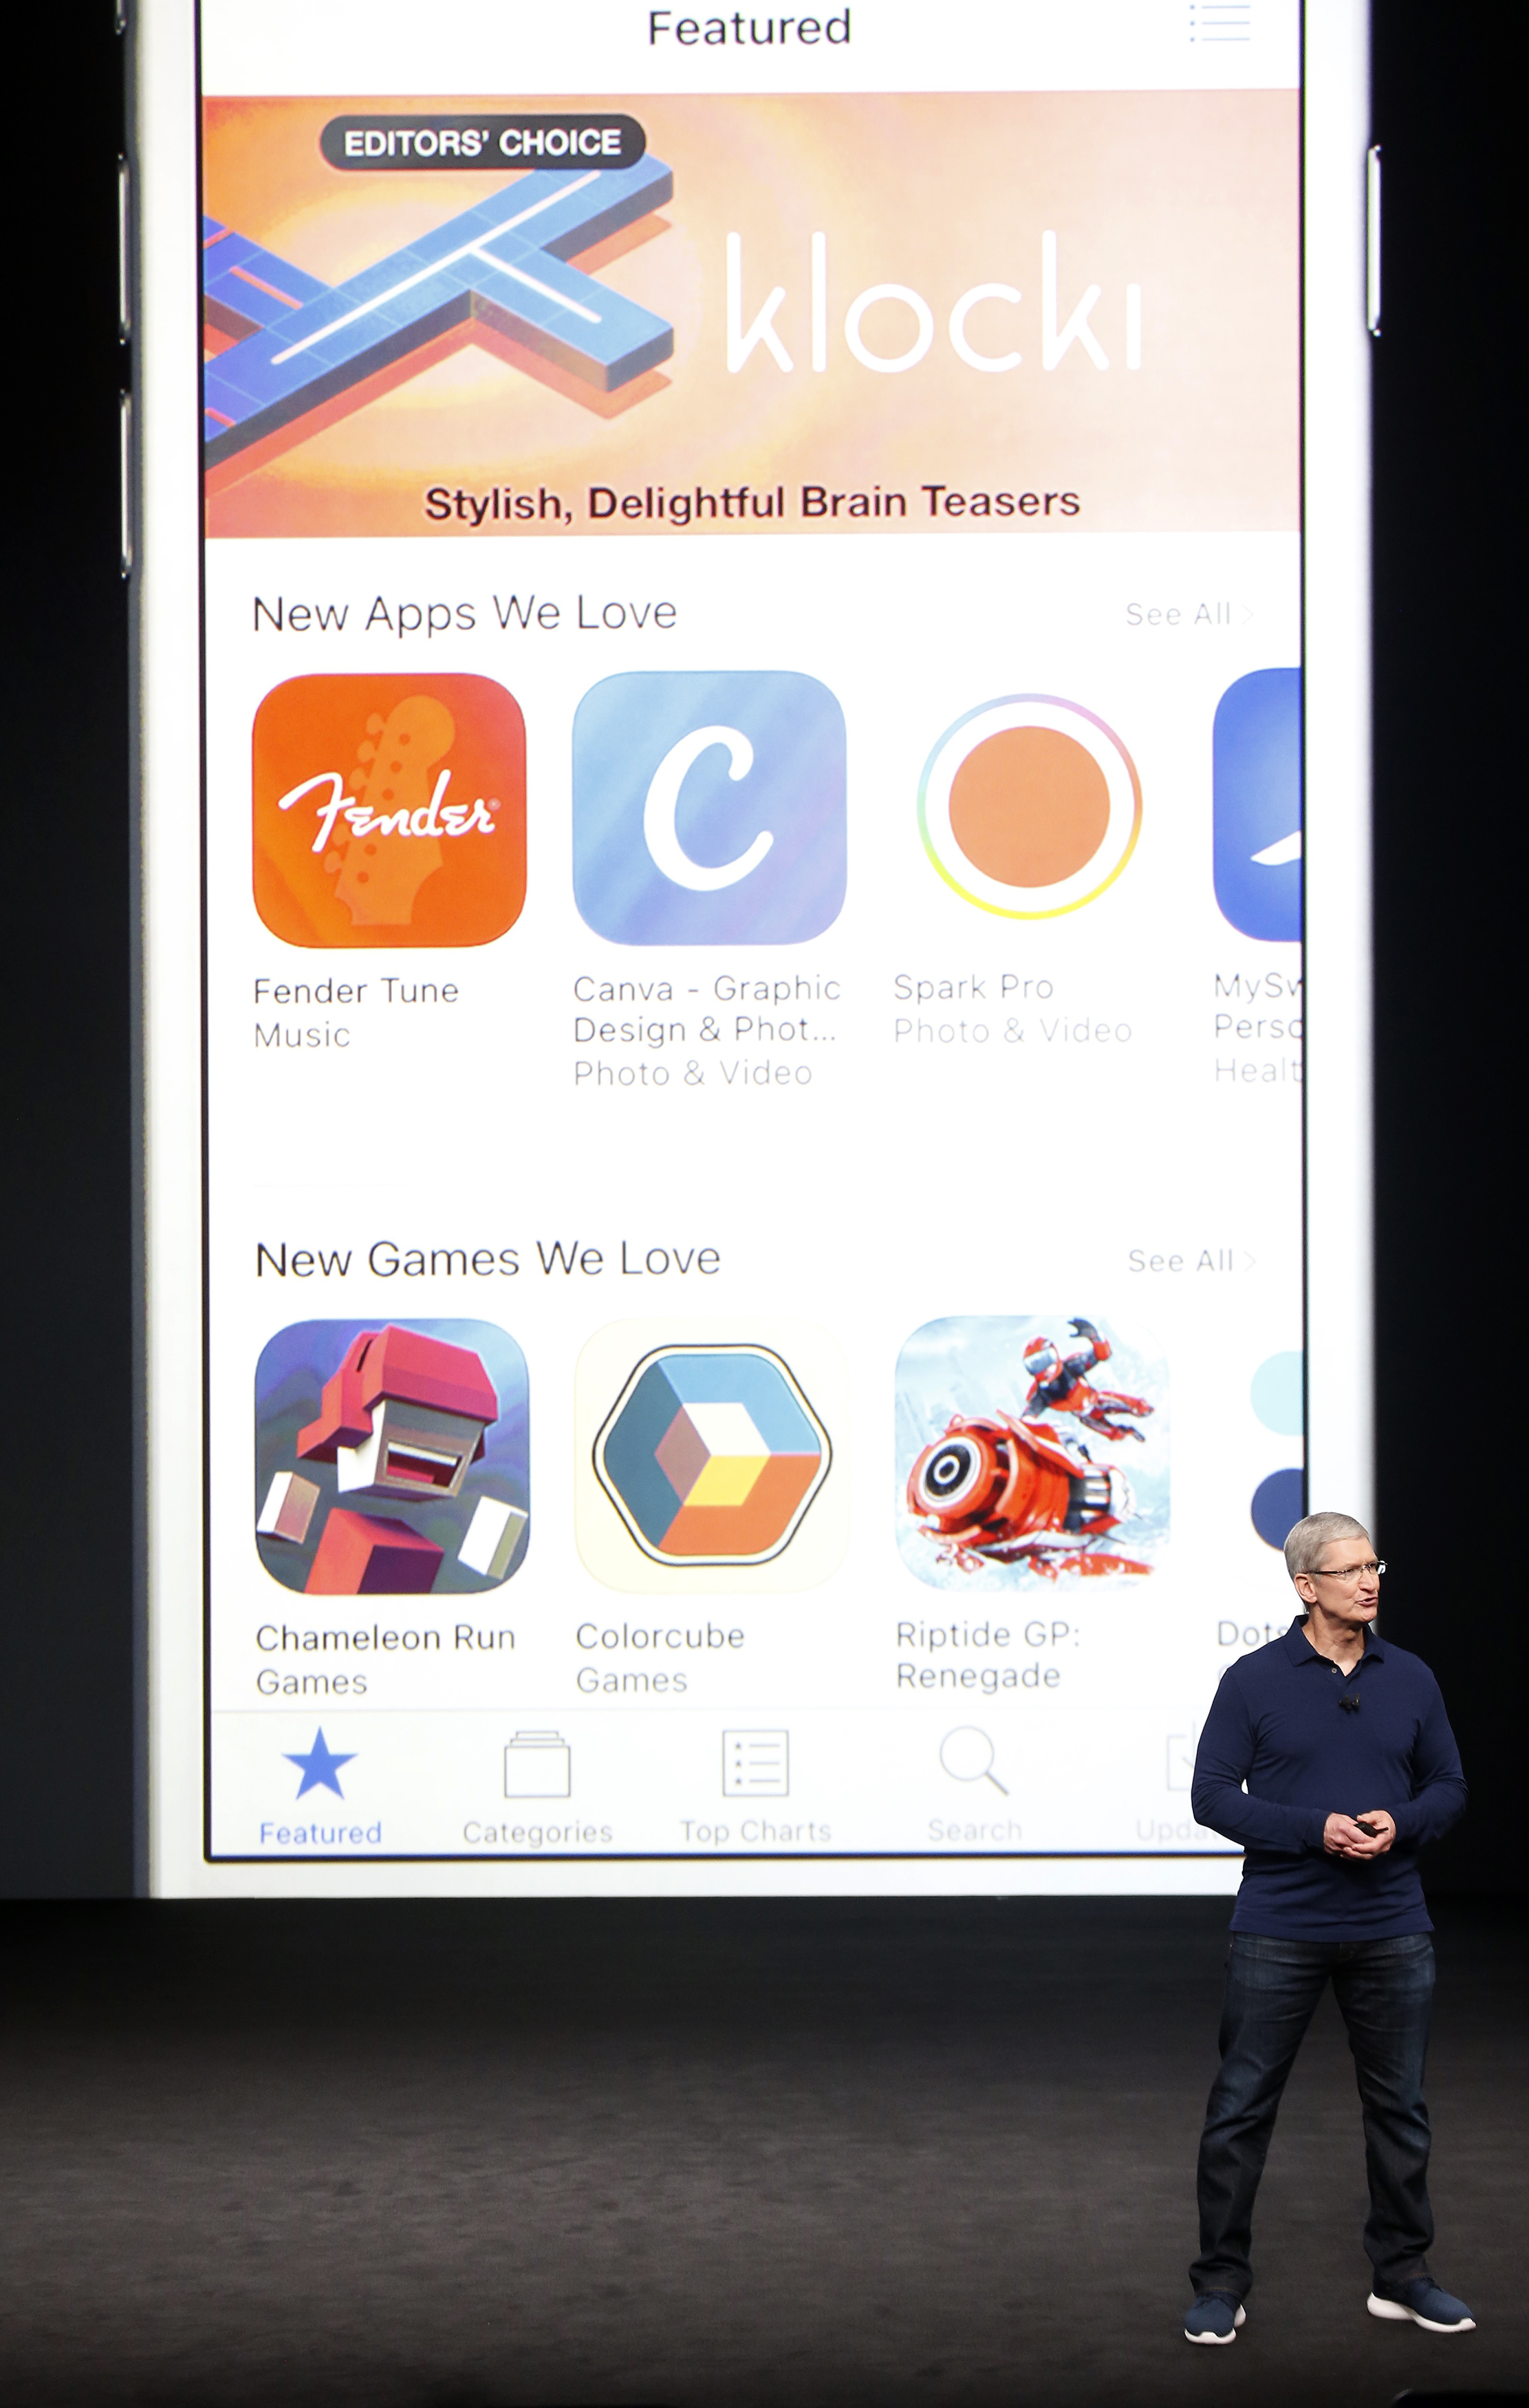 Apple Inc CEO Tim Cook discusses the App Store during an Apple media event in San Francisco